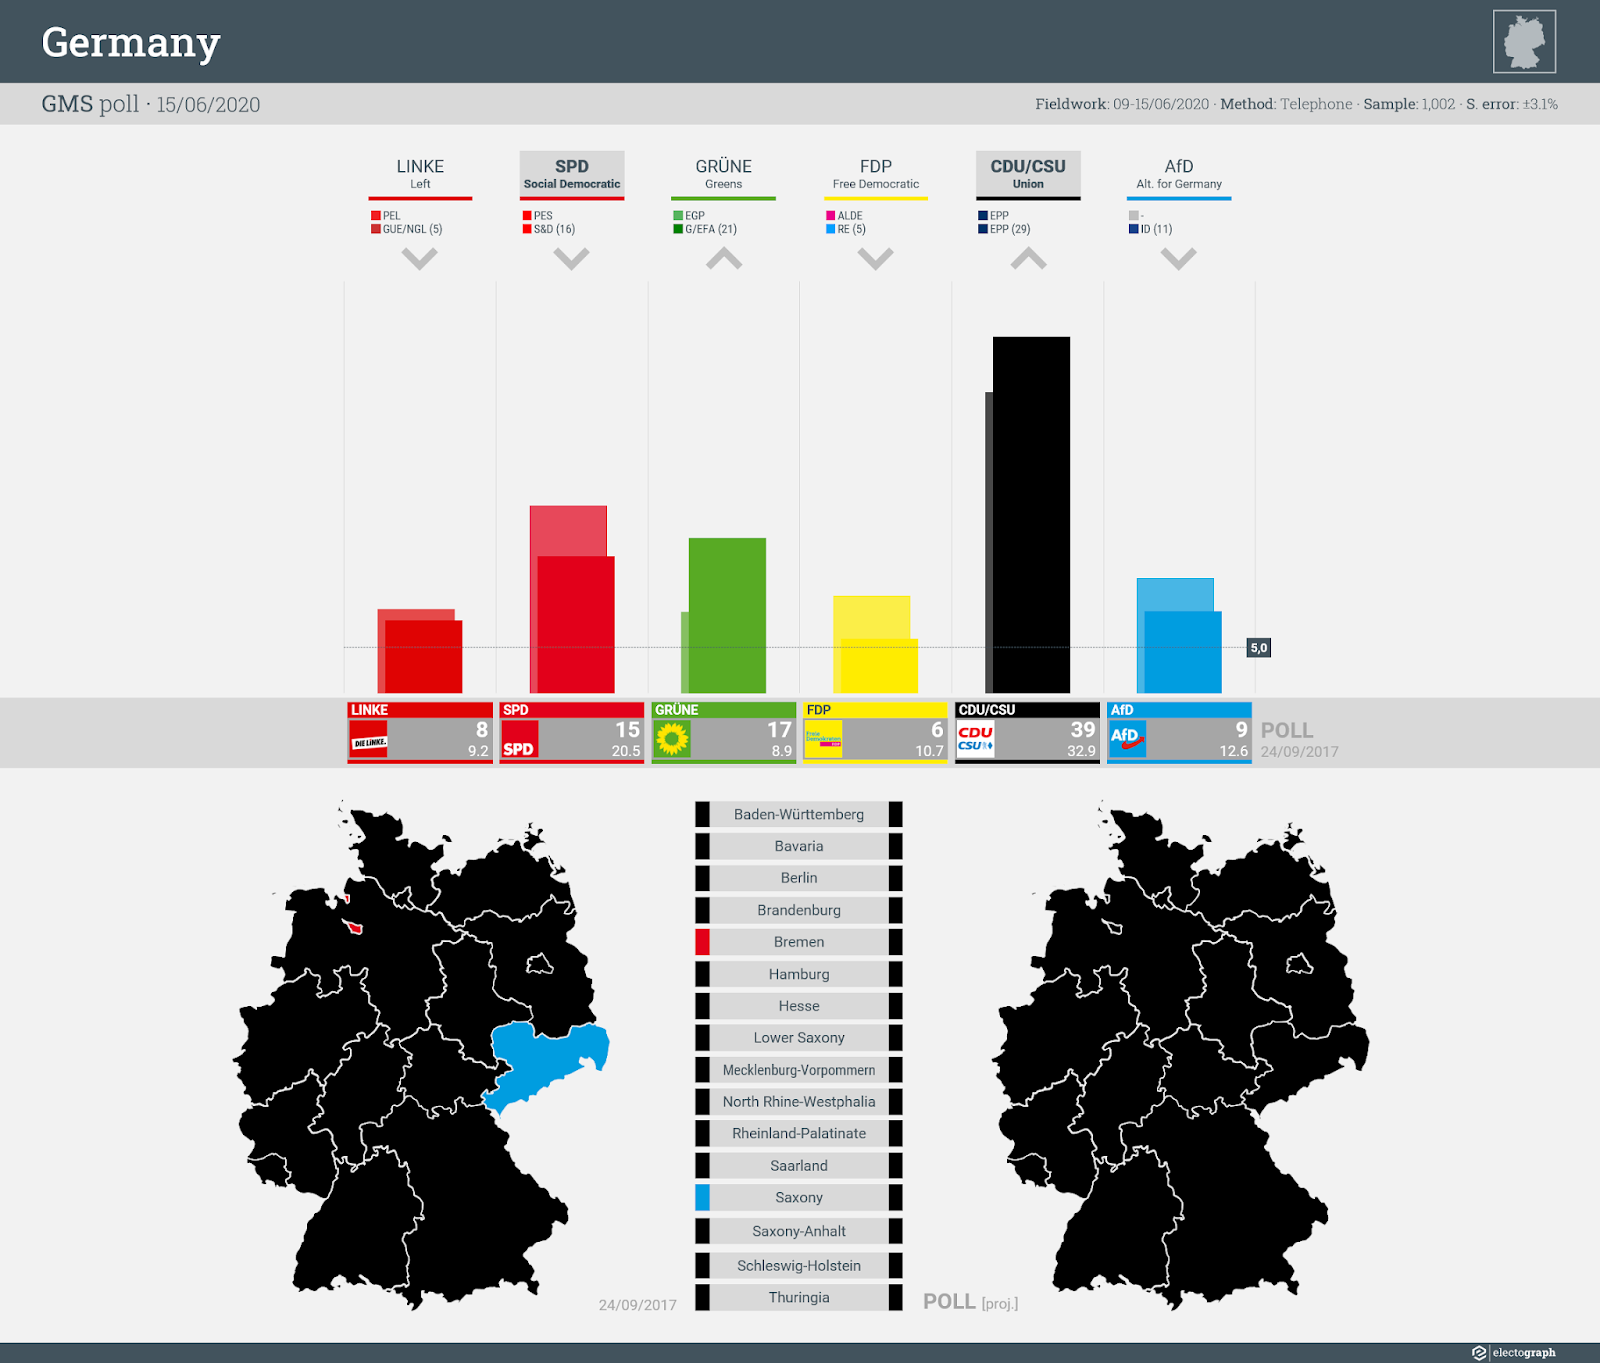 GERMANY: GMS poll chart, 15 June 2020